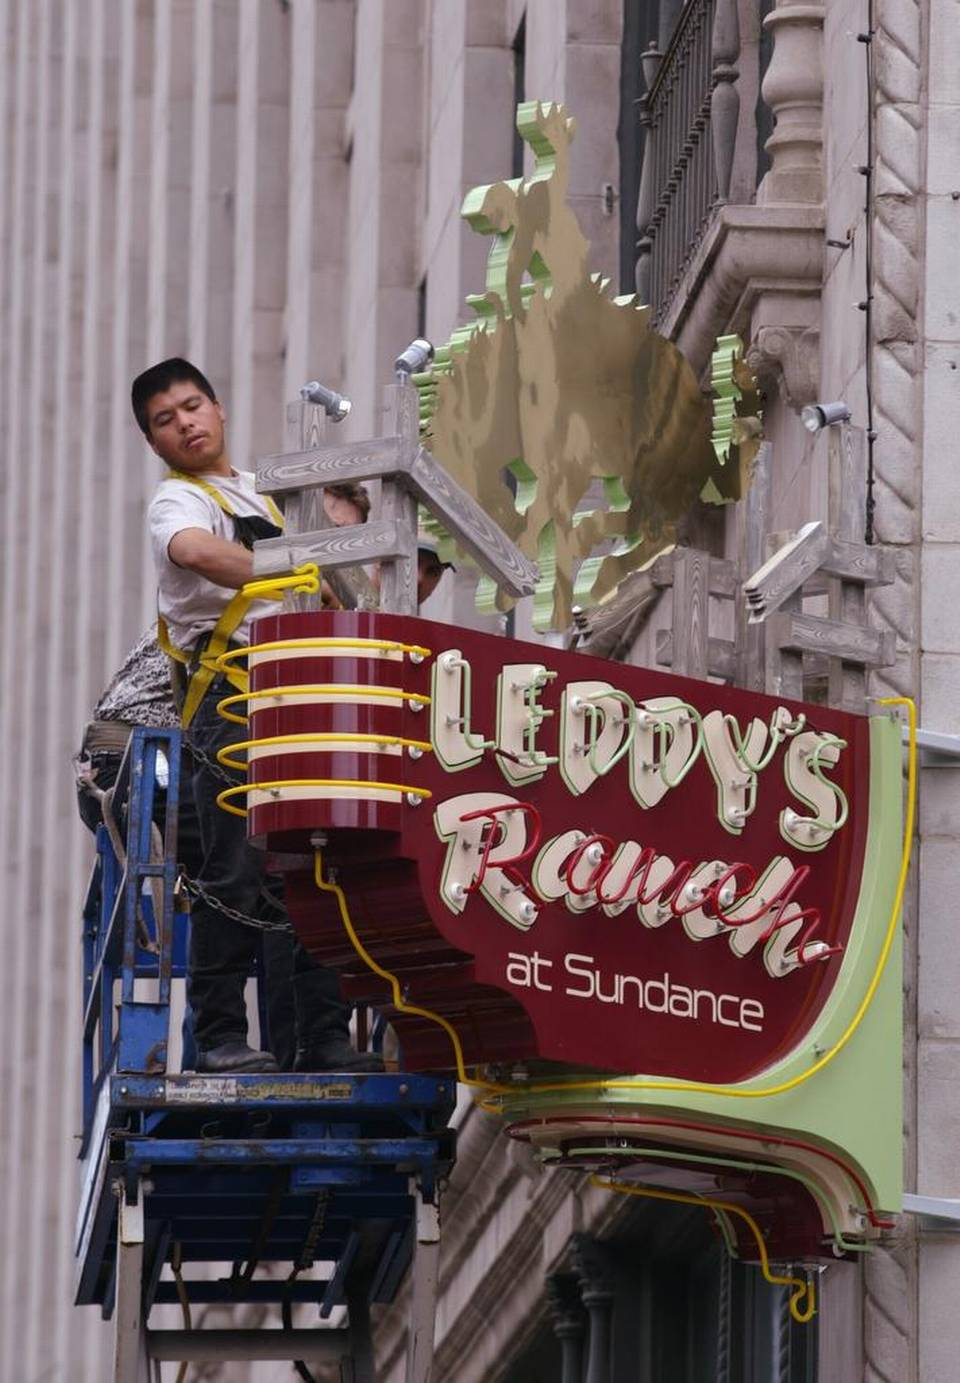 M.L. Leddy's Sign at Sundance Square in Fort Worth Texas (Photo Courtesy of Star-Telegraph)